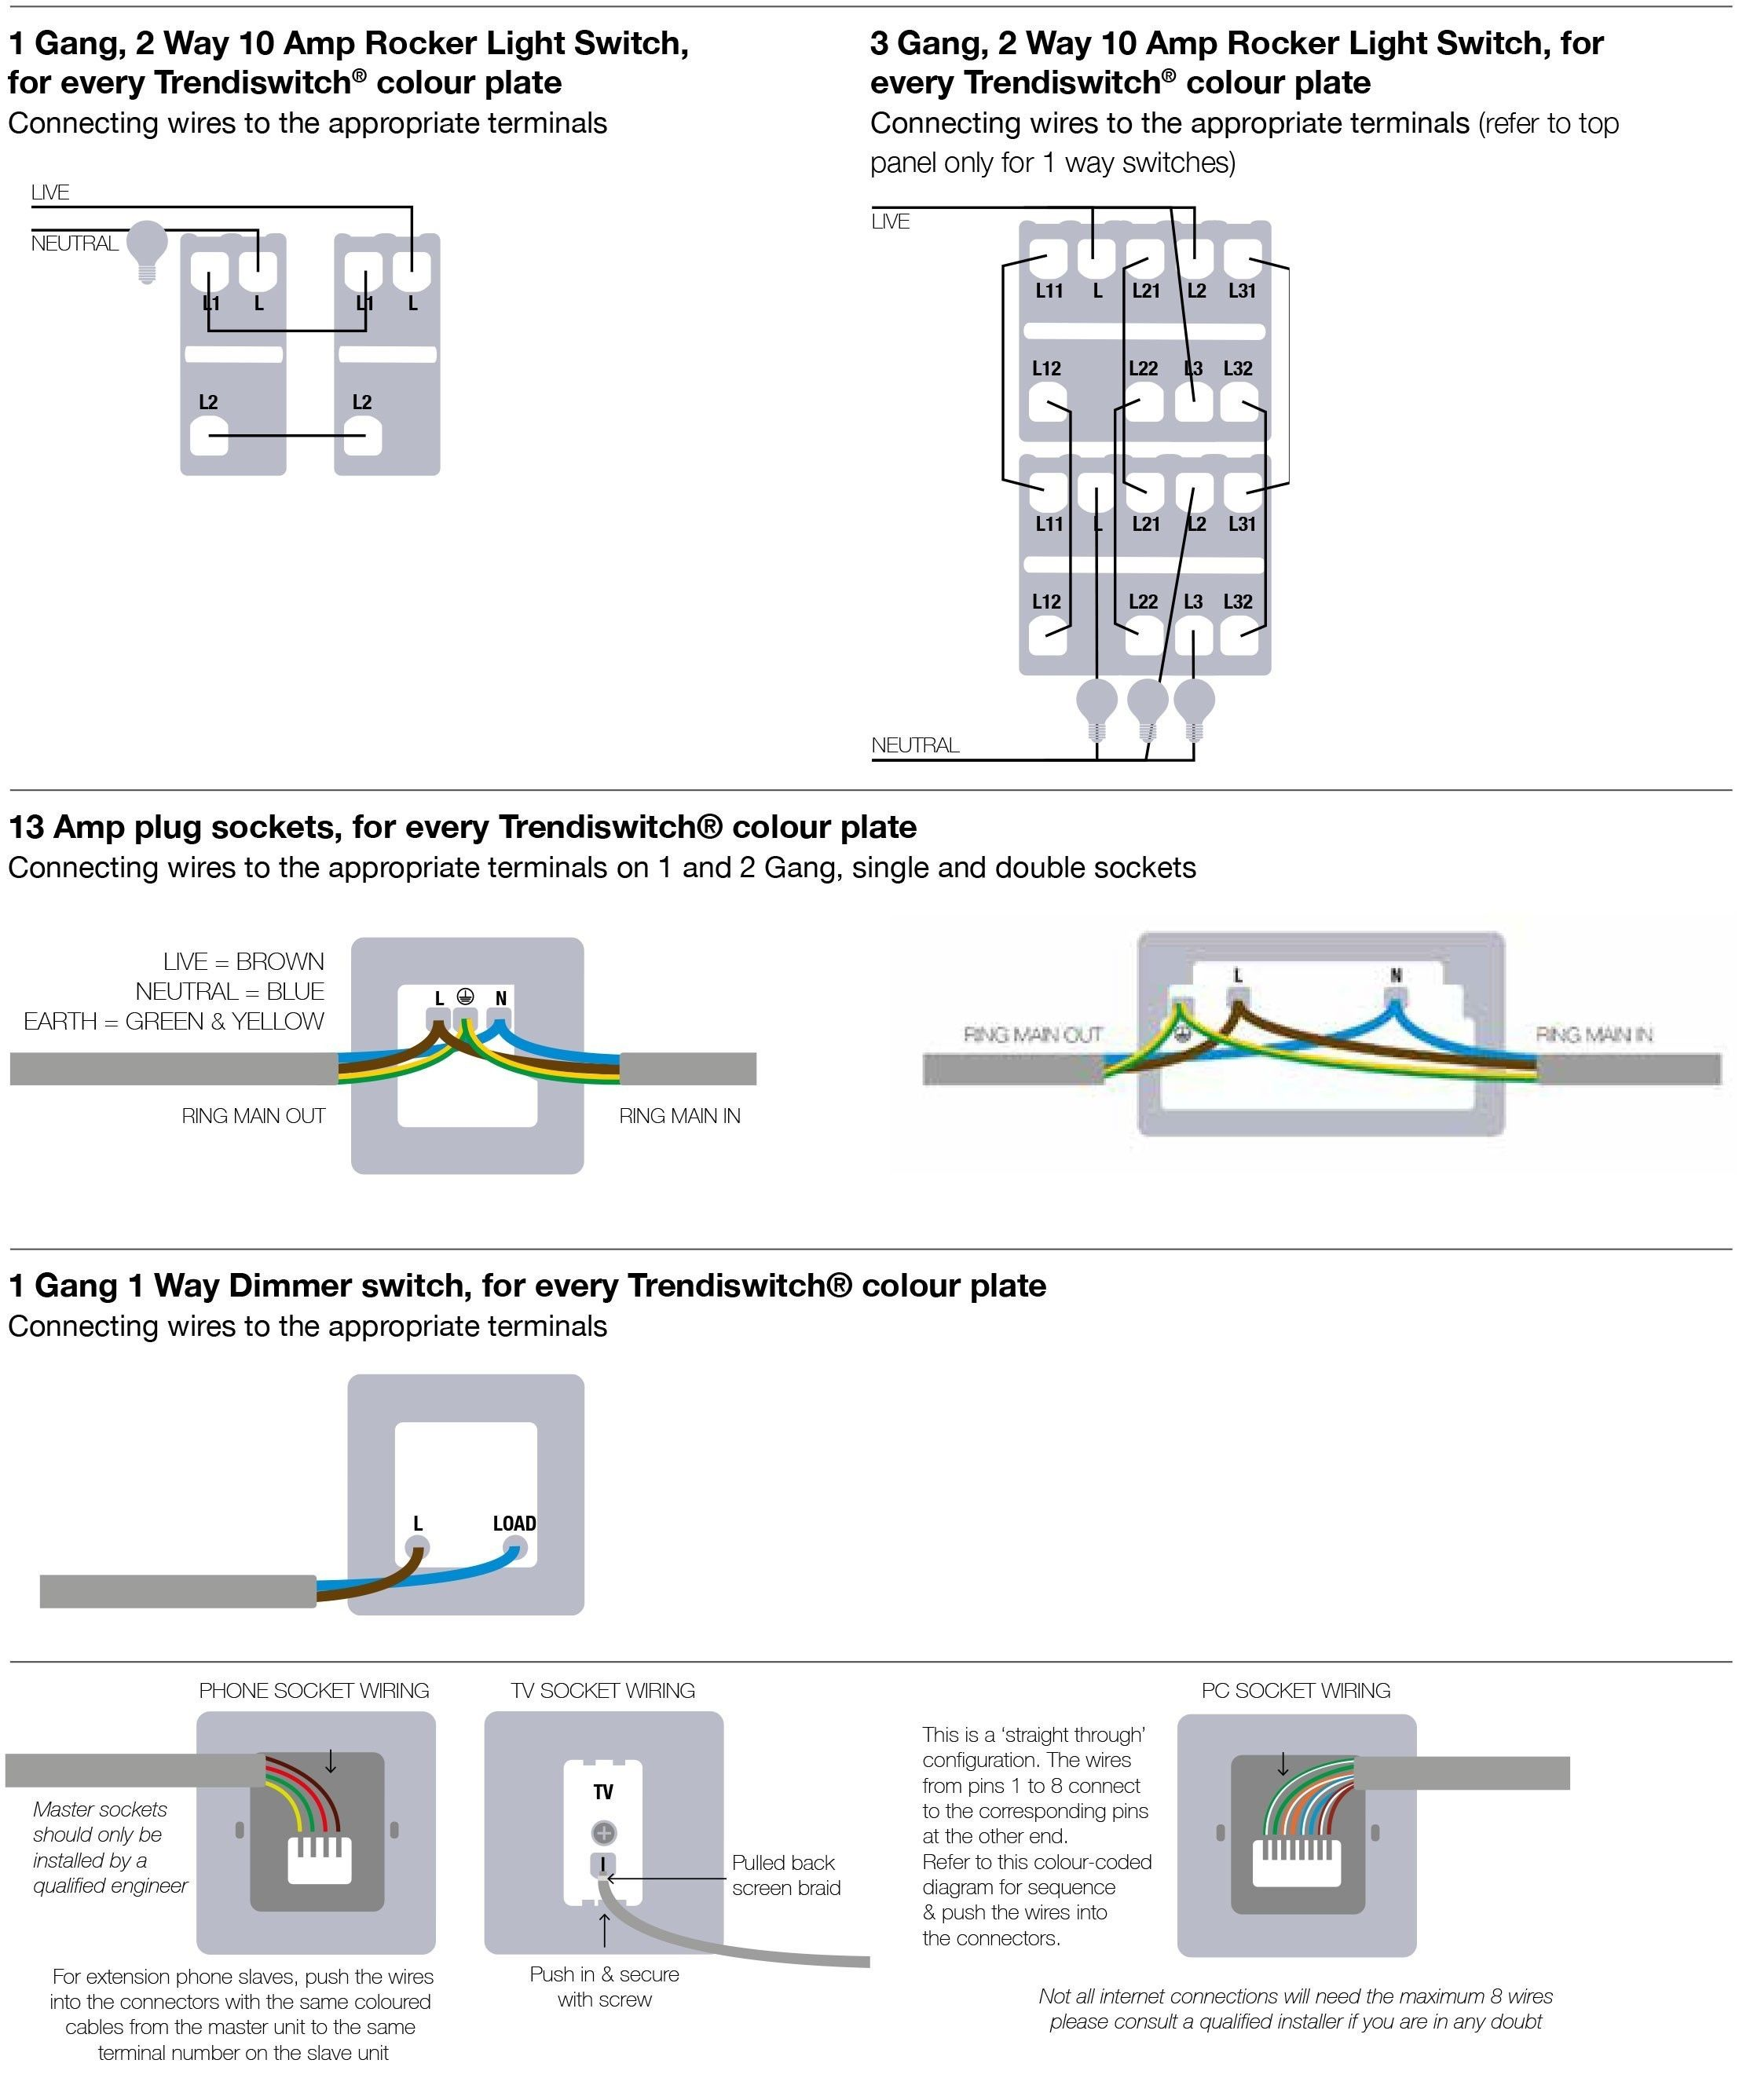 Unique Wiring Diagram For Single Pole Light Switch Diagram Diagramsample Diagramtemplate Wiringdiagram Diag Light Switch Wiring Dimmer Switch Light Switch